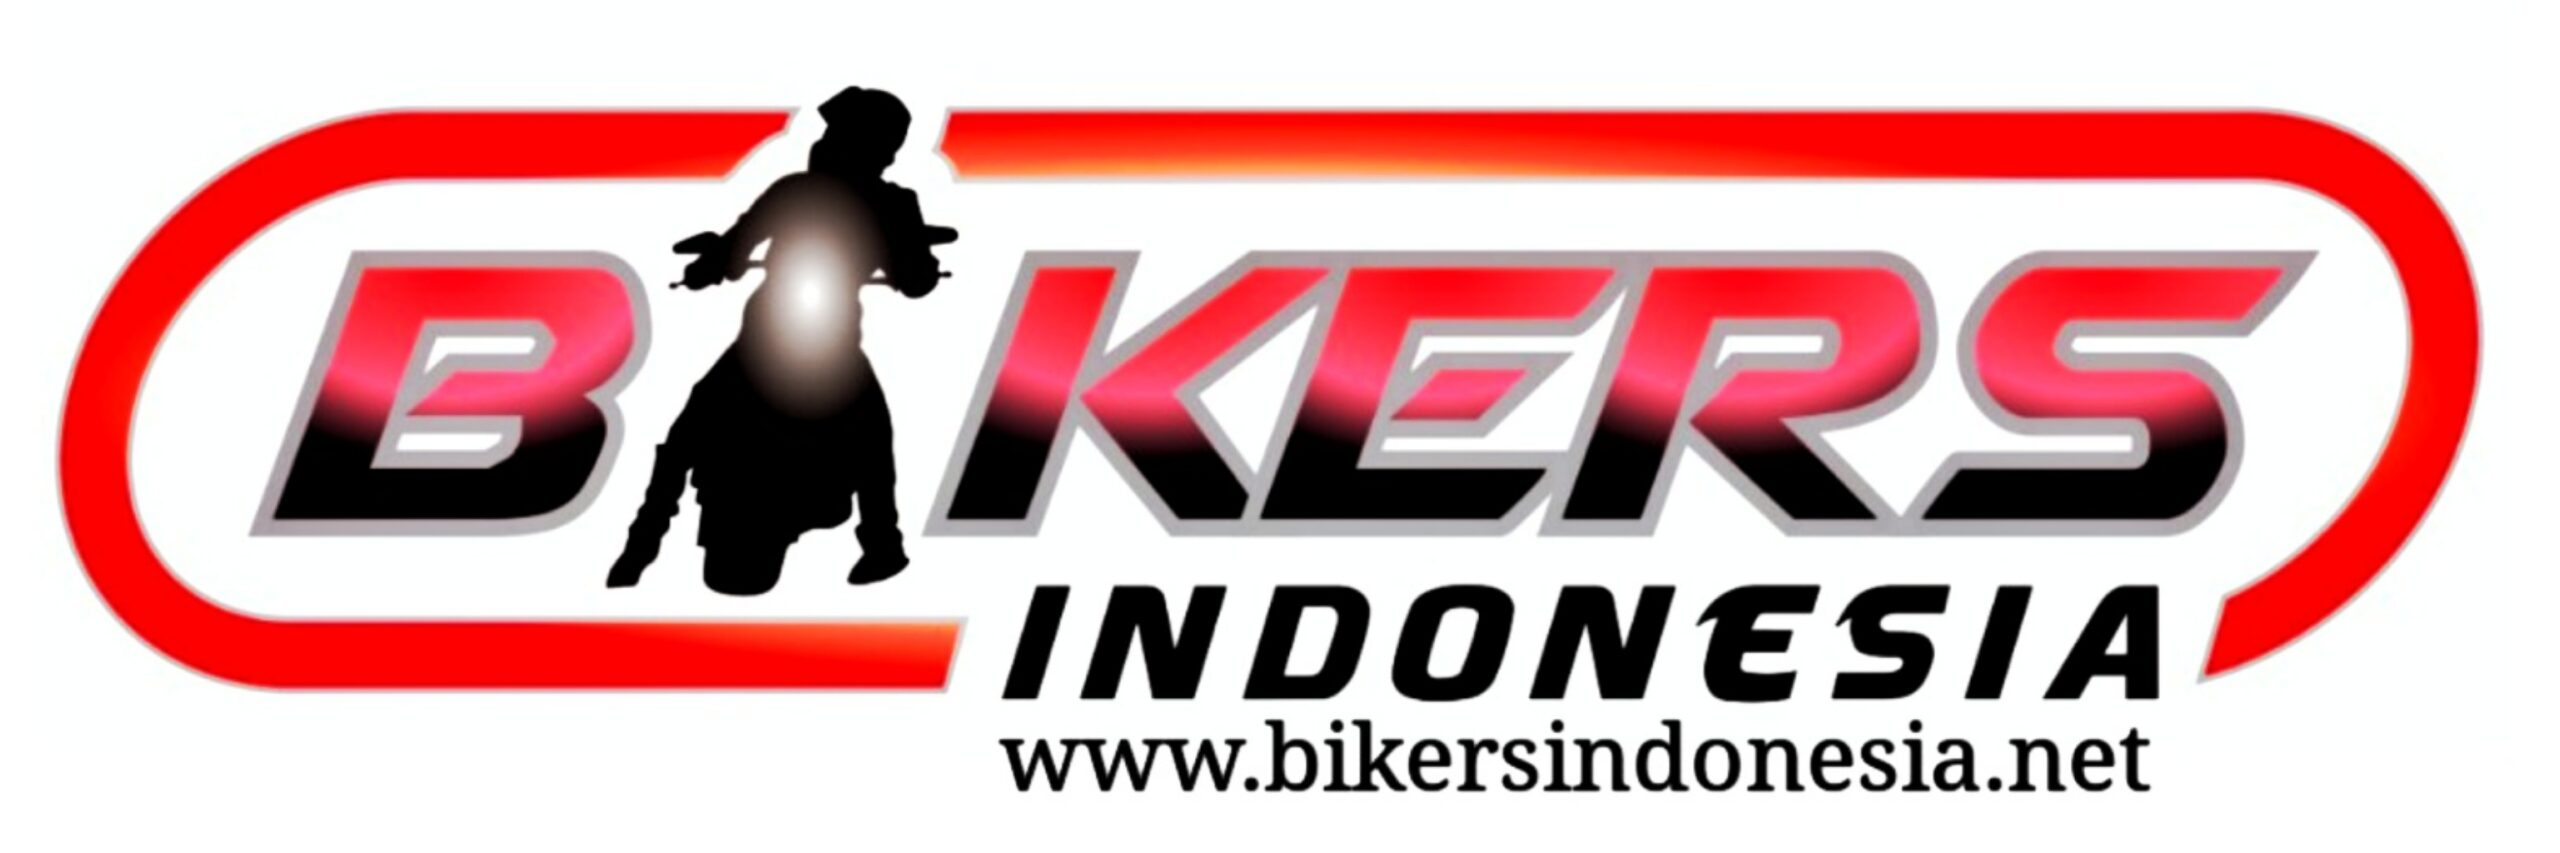 About tentang Bikers Indonesia